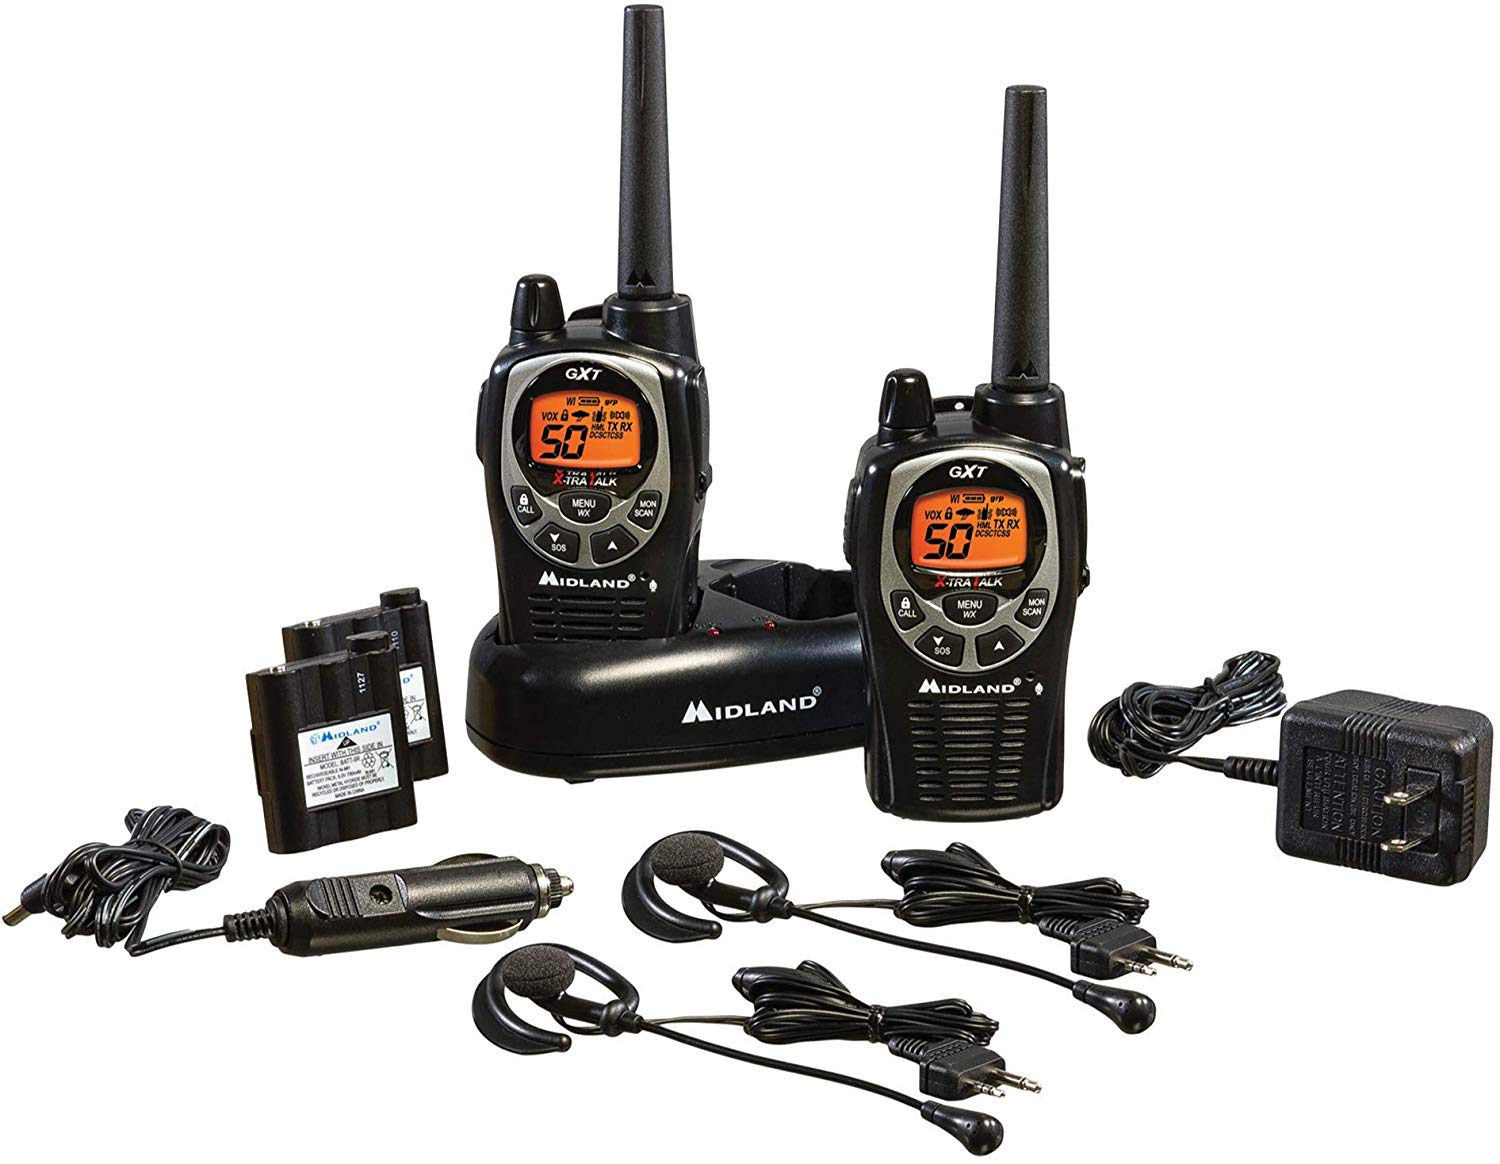 idland - GXT1000VP4, 50 Channel GMRS Two-Way Radio